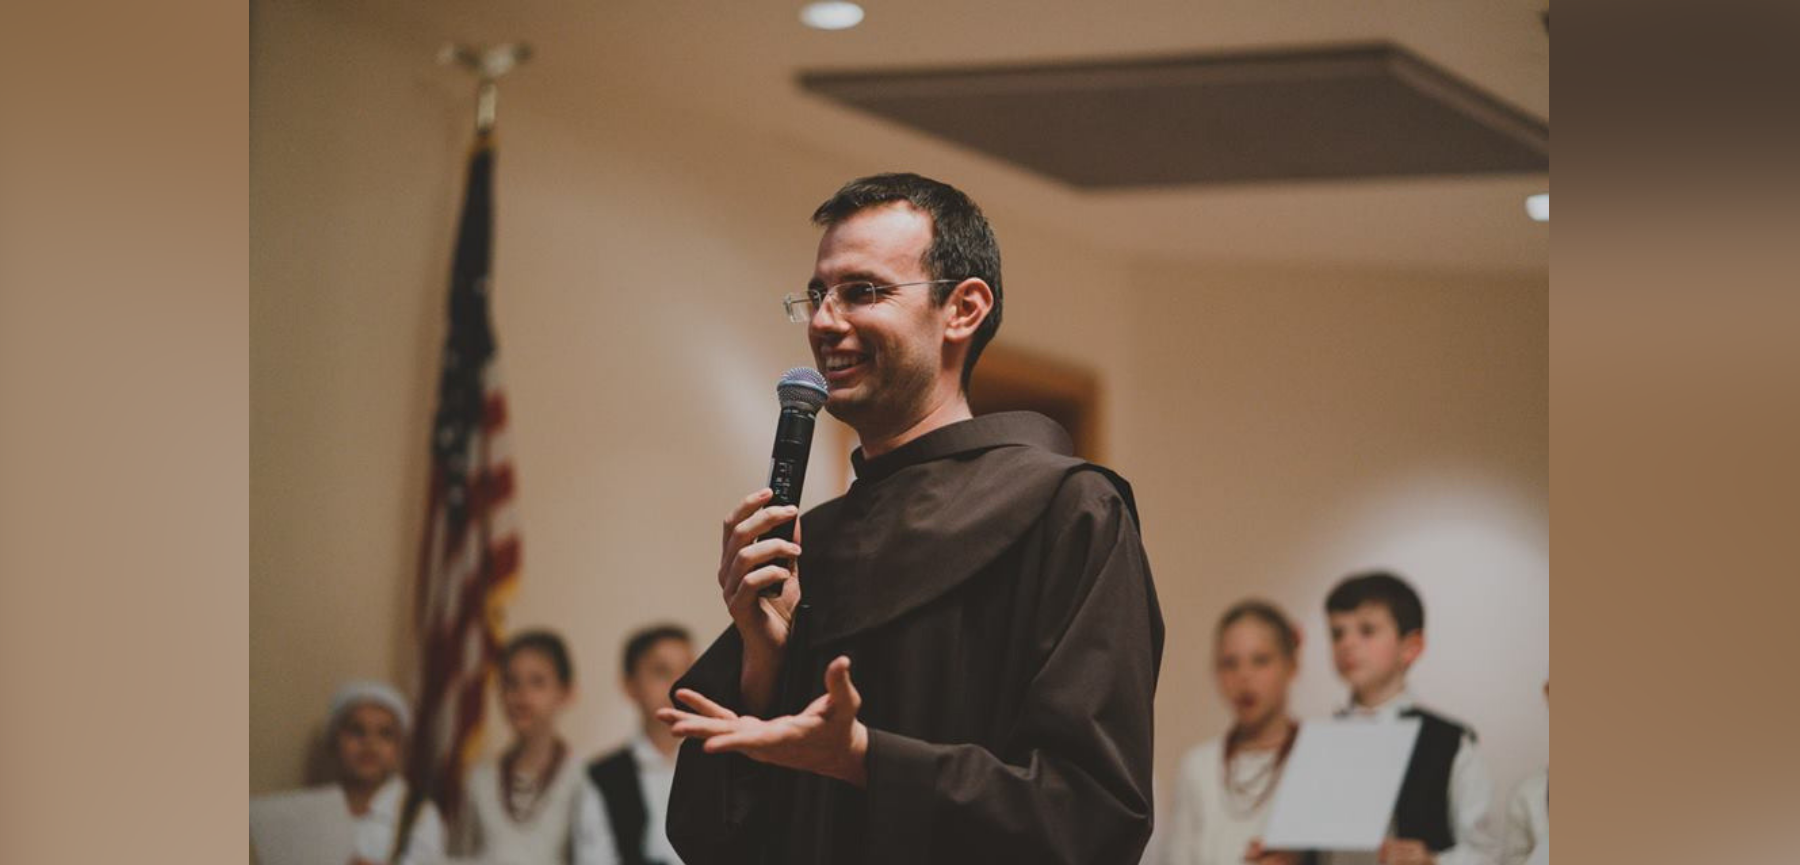 Priest by Vocation, Counselor at Heart